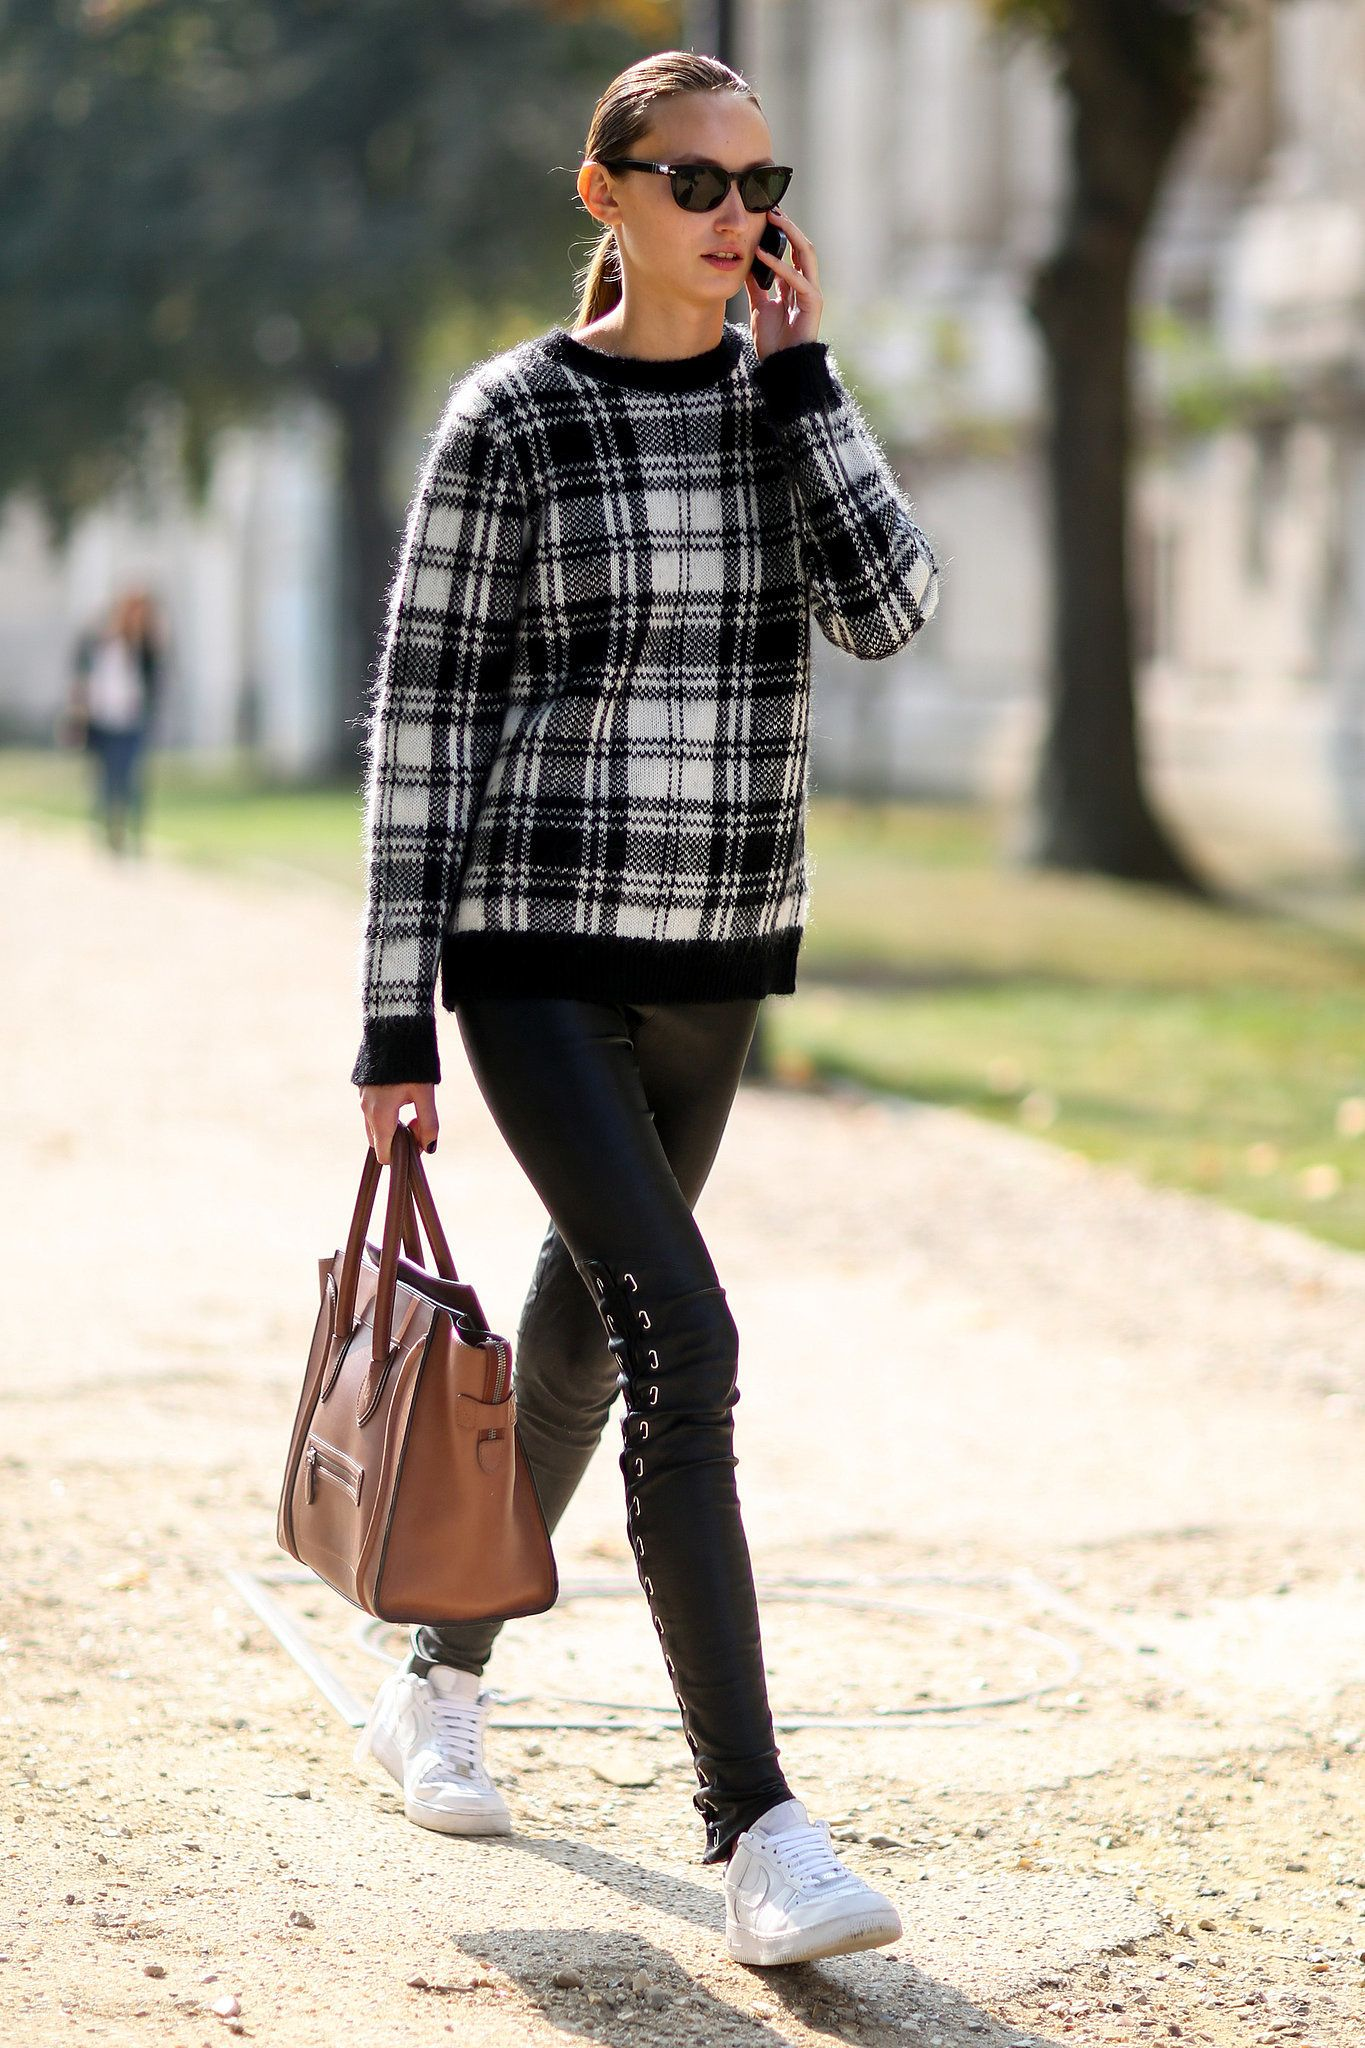 Classic plaid sweater paired with edgy lace-up skinny jeans 9ad8d36197d